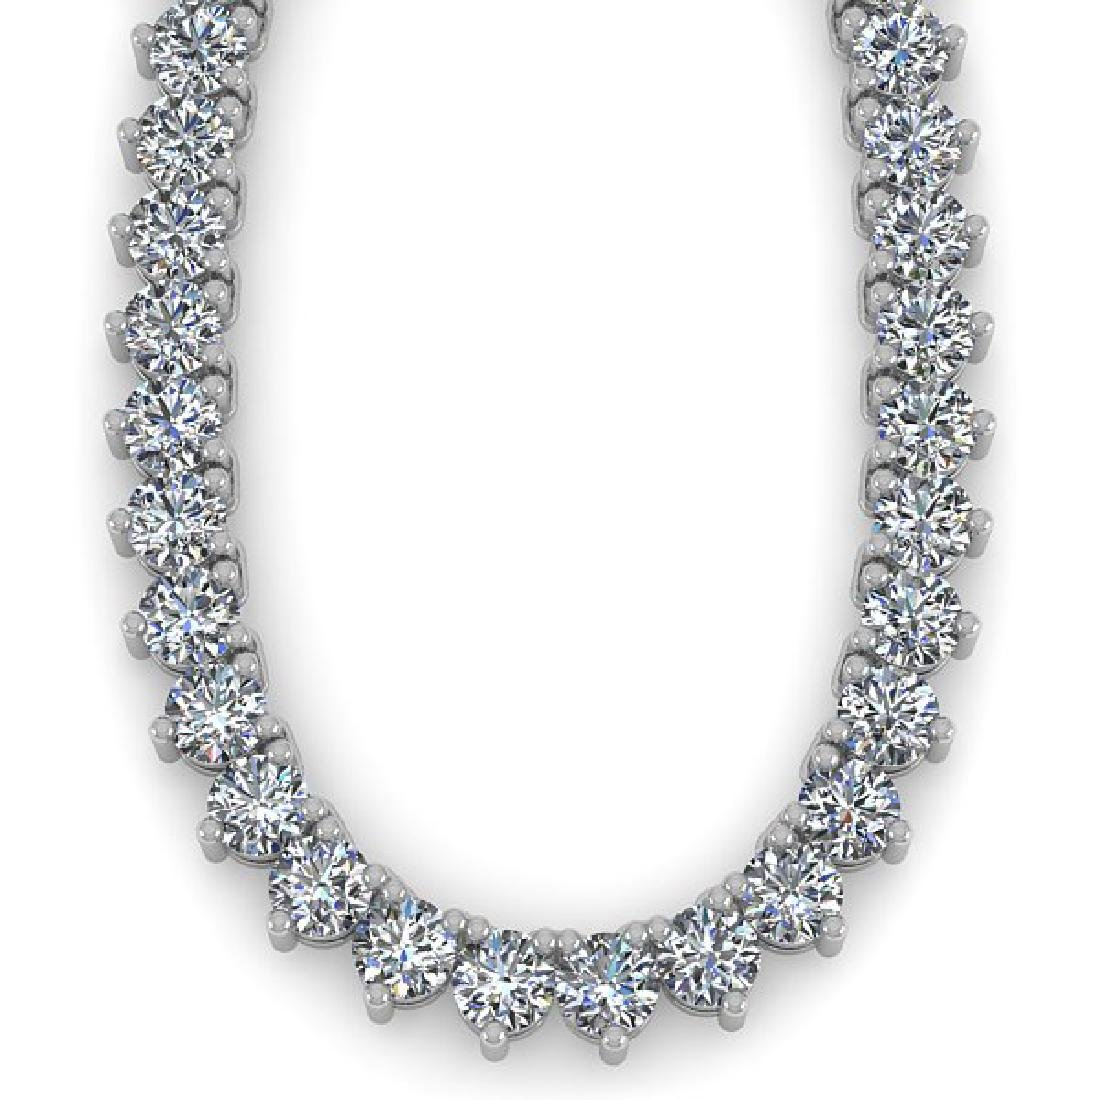 80 CTW Solitaire Certified SI Diamond Necklace 14K - 2